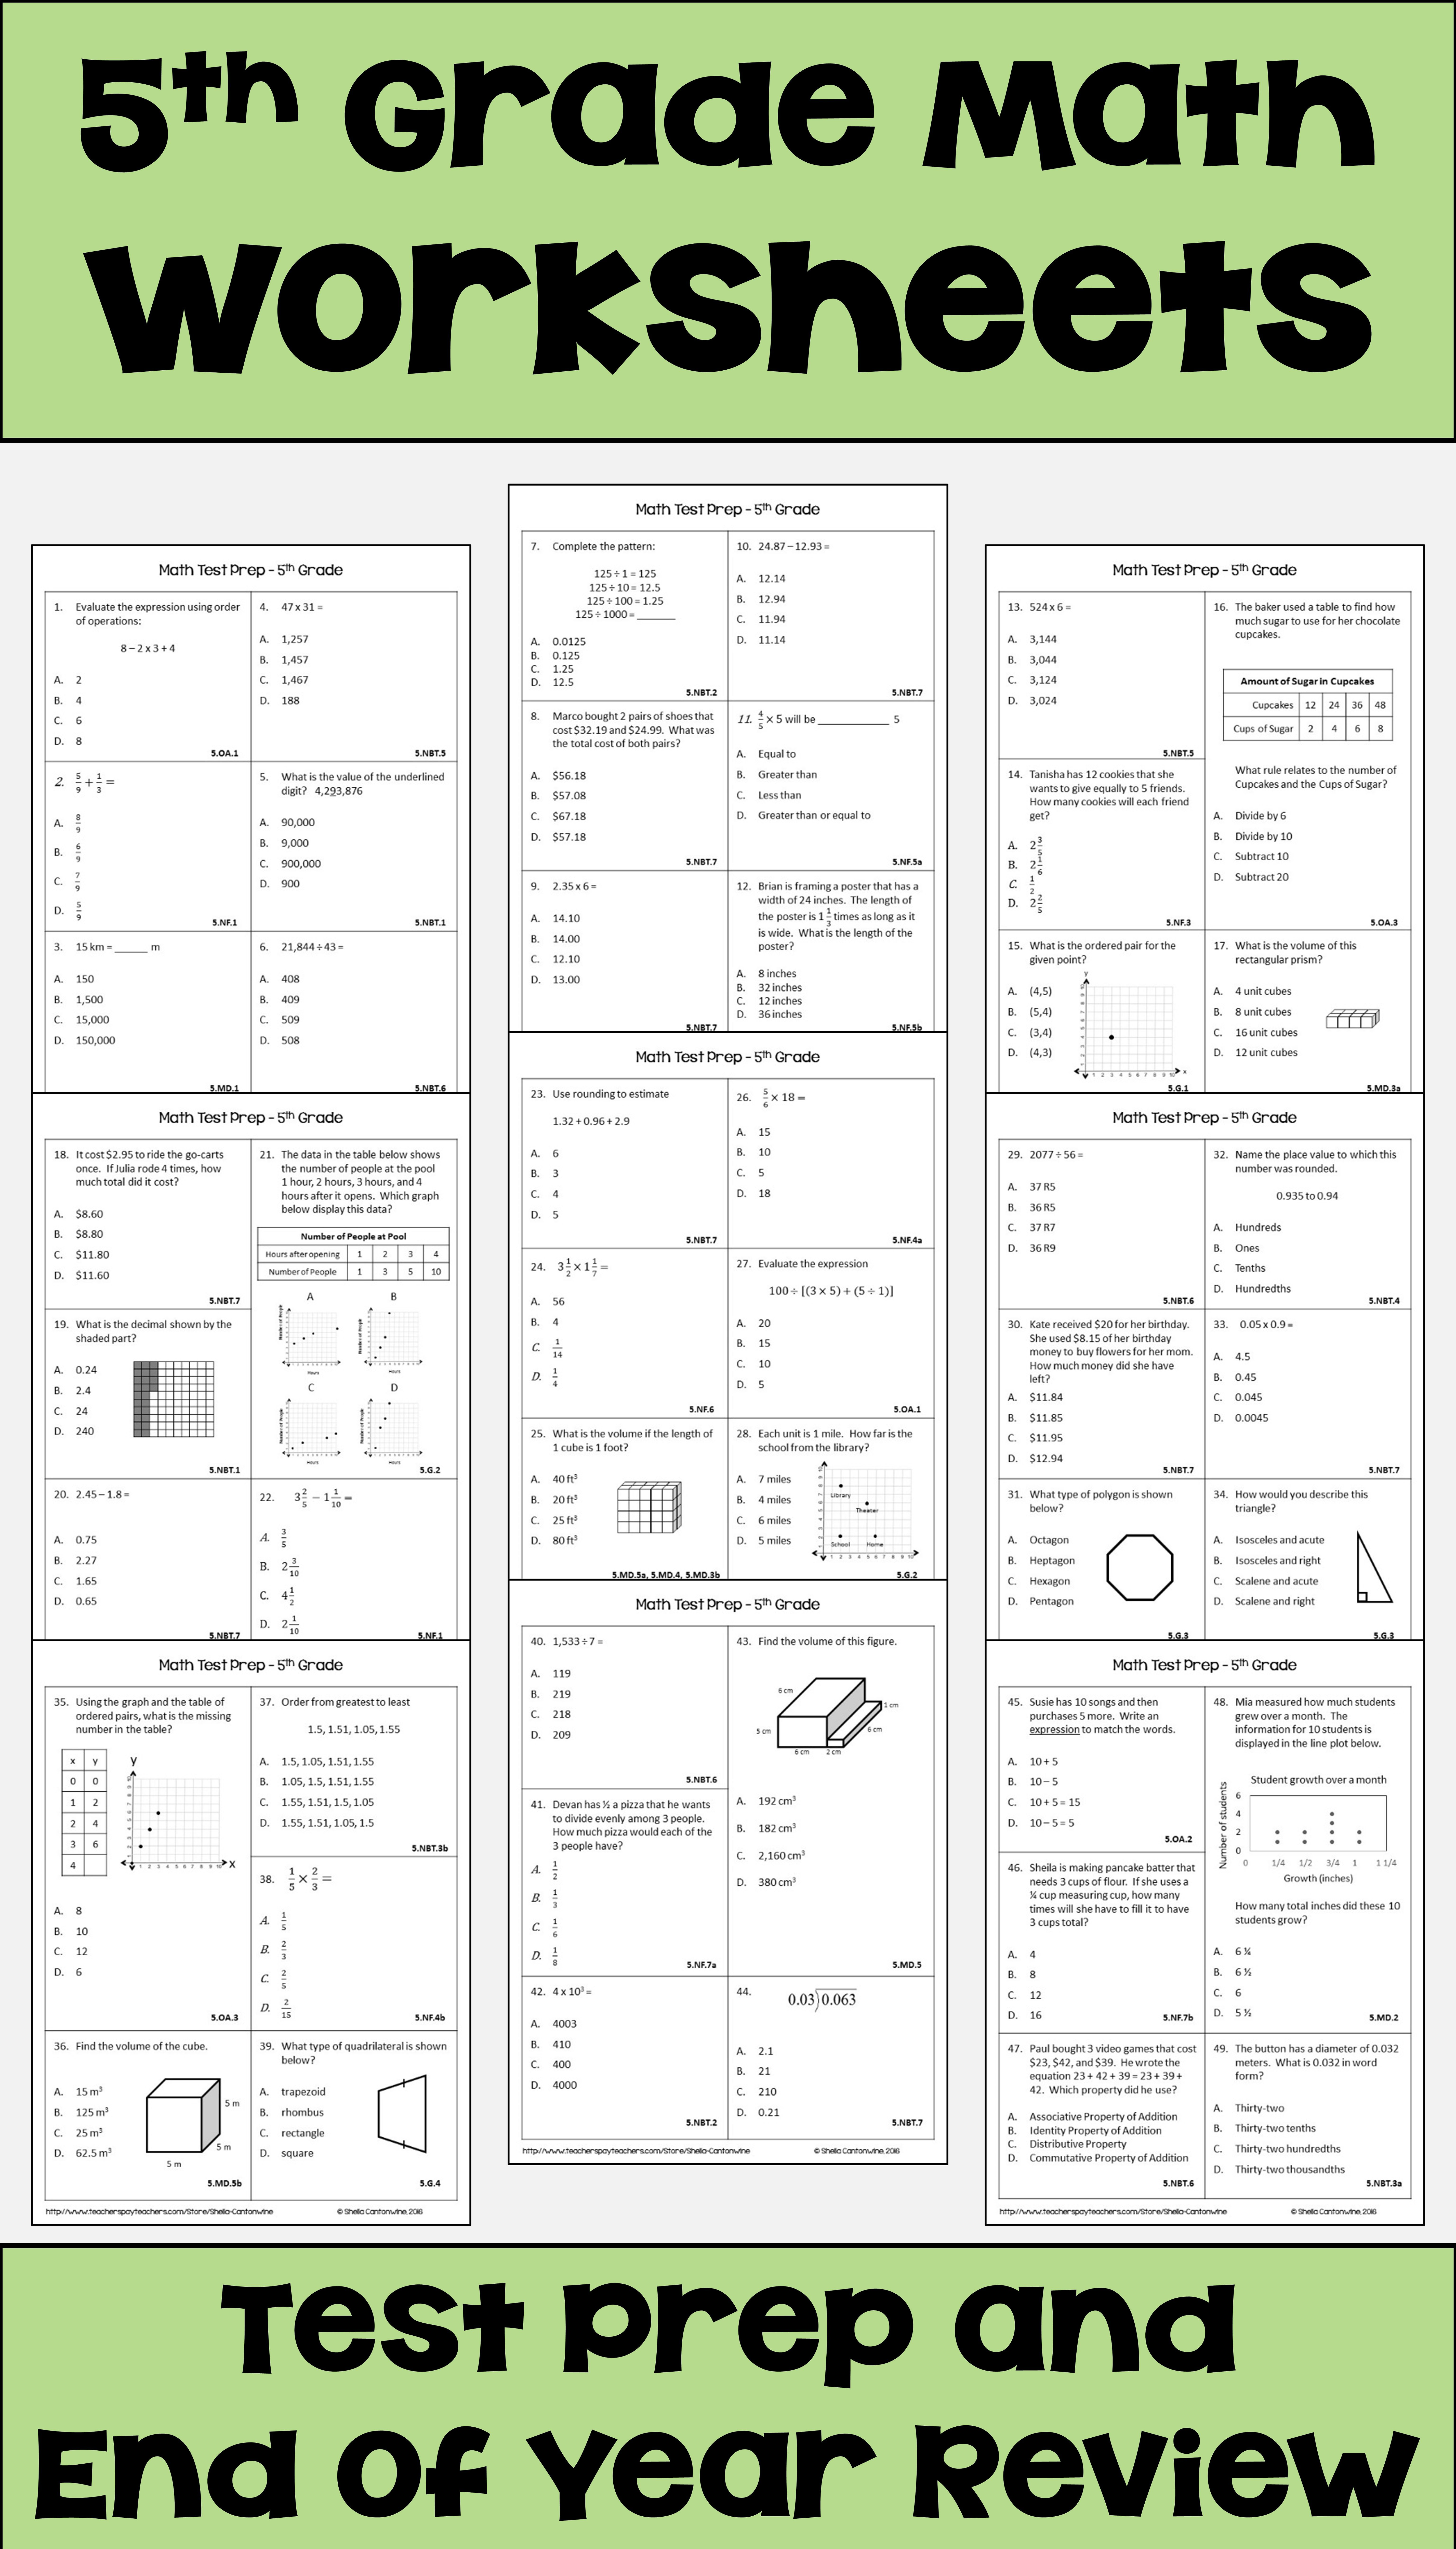 Pin On 5th Grade Math Test Prep Amp Review